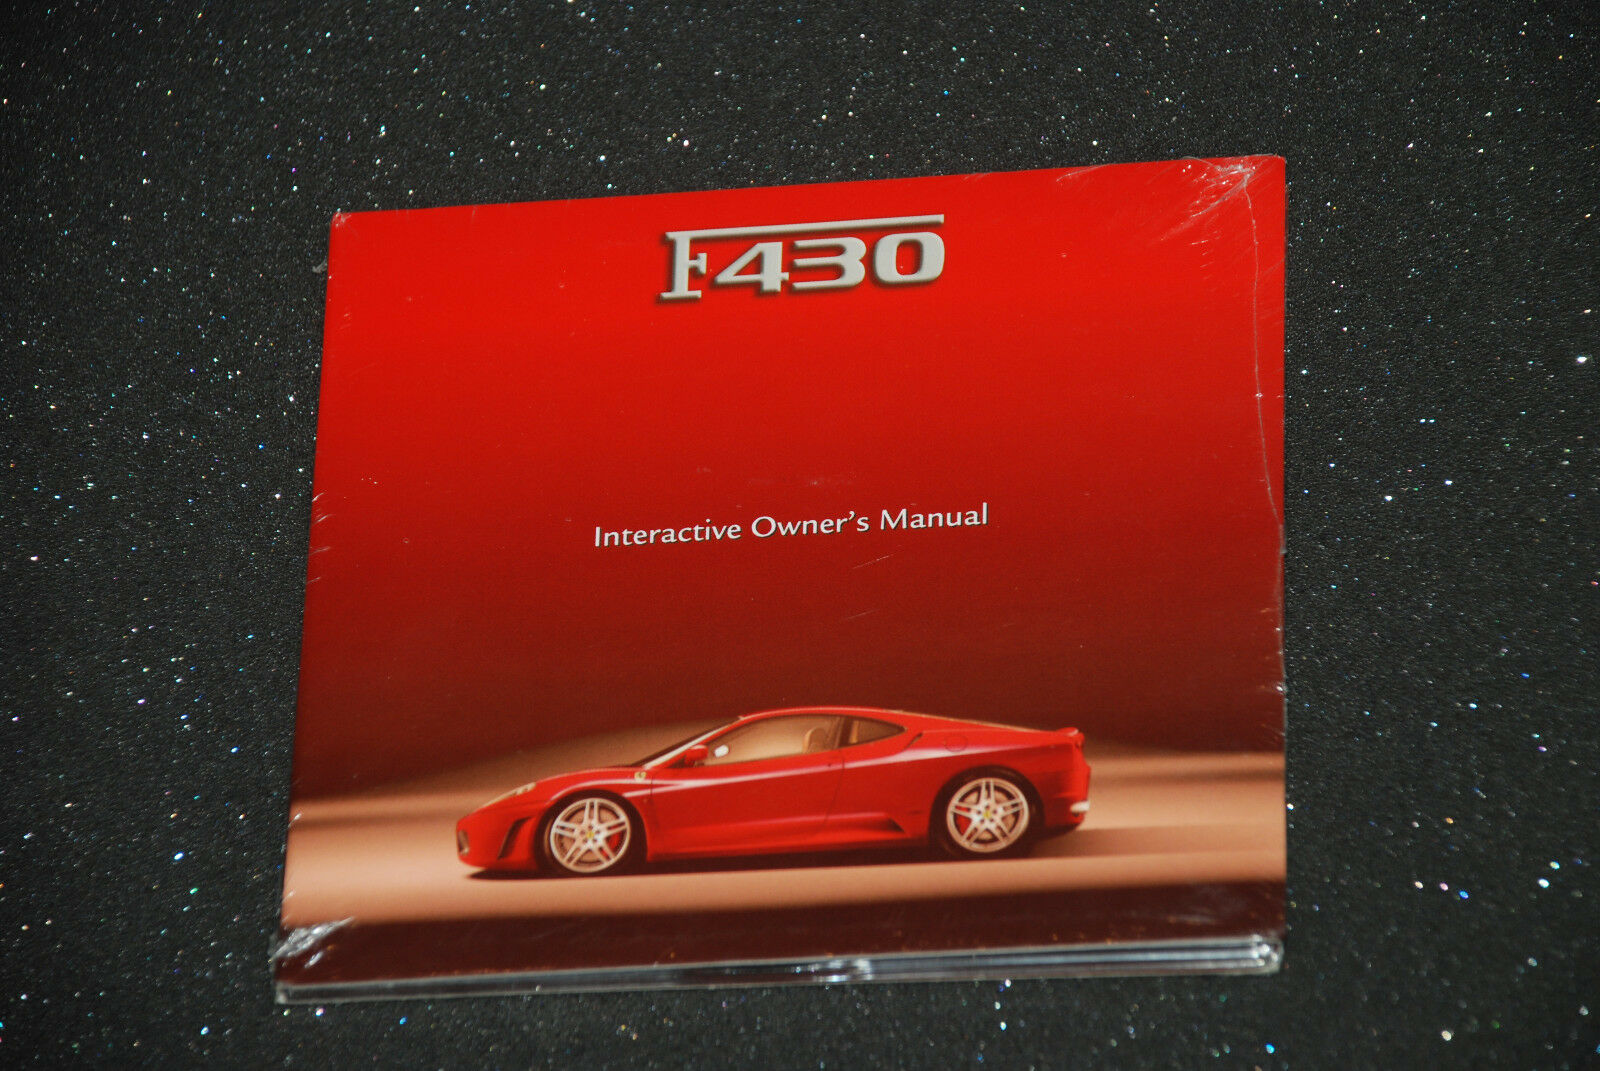 Ferrari Factory F430 Interactive Owner's Manual CD-Rom  2407/06 - March 2008